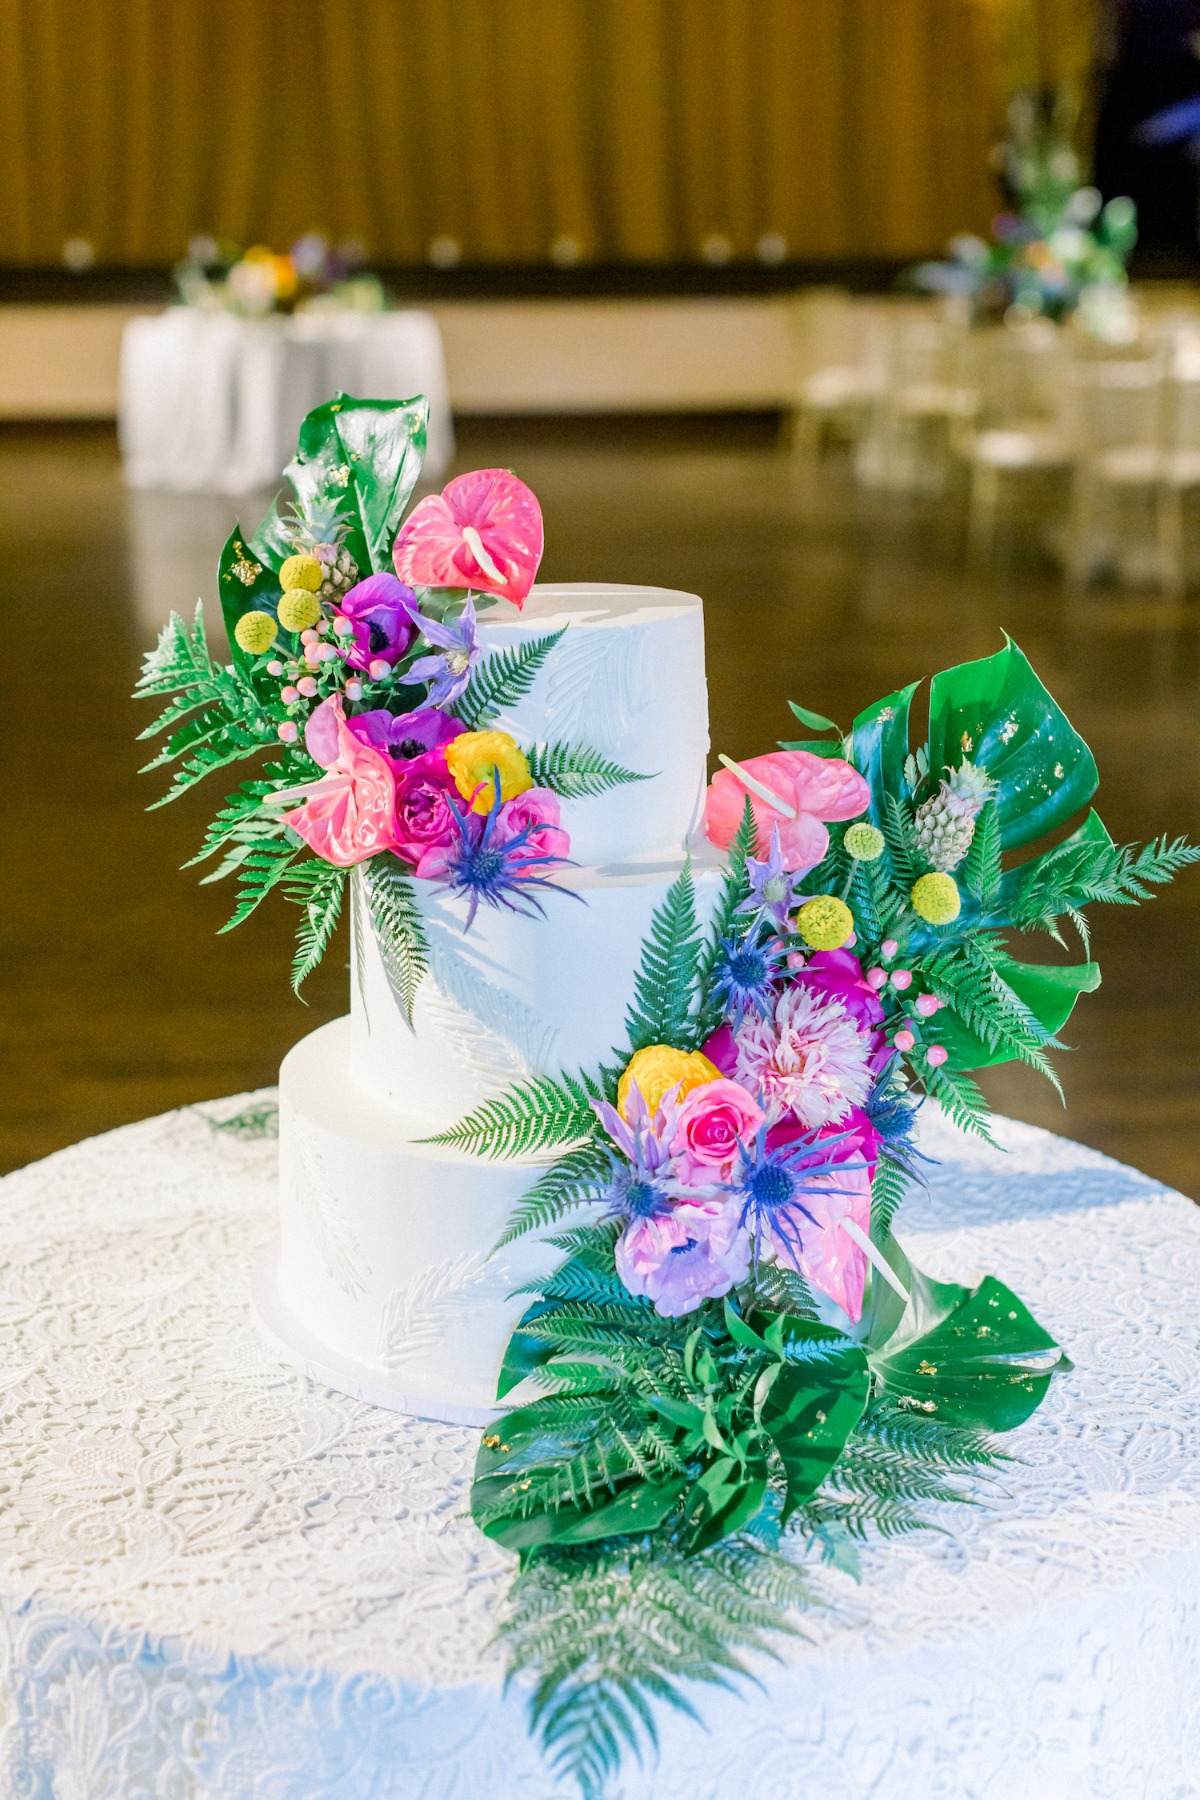 white wedding cake adorned with tropical flowers